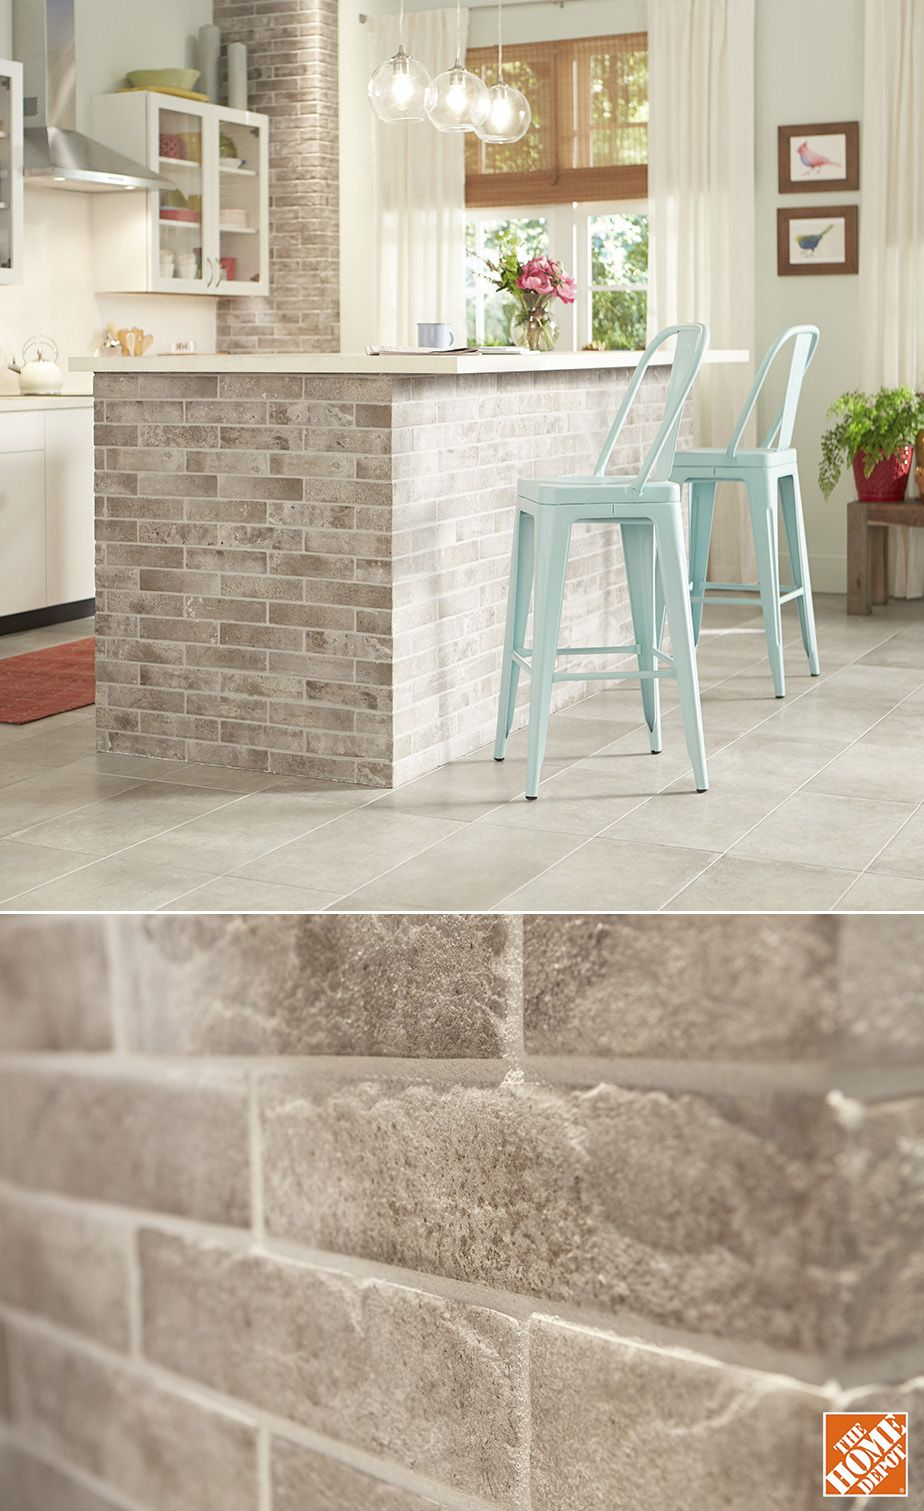 Adding Brick Wall Interior Msi Abbey Brick 2 1 3 In X 10 In Glazed Porcelain Floor And Wall